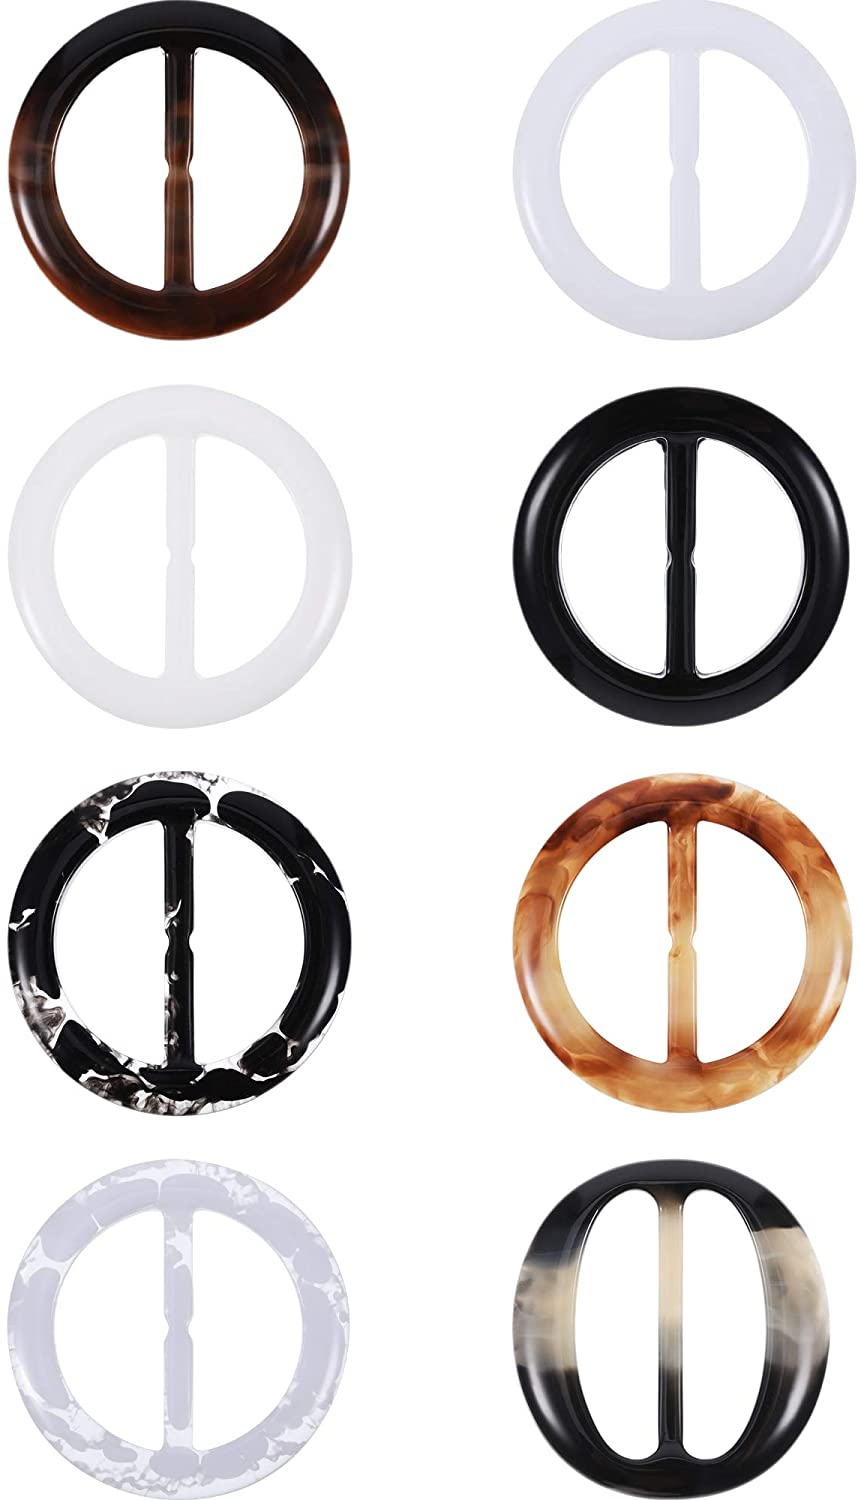 Plastic Round Elegant Tee Shirt Clips, Scarf Clips, 2 Inches, 8 Colors, 16 Pieces (Color A, Size A)